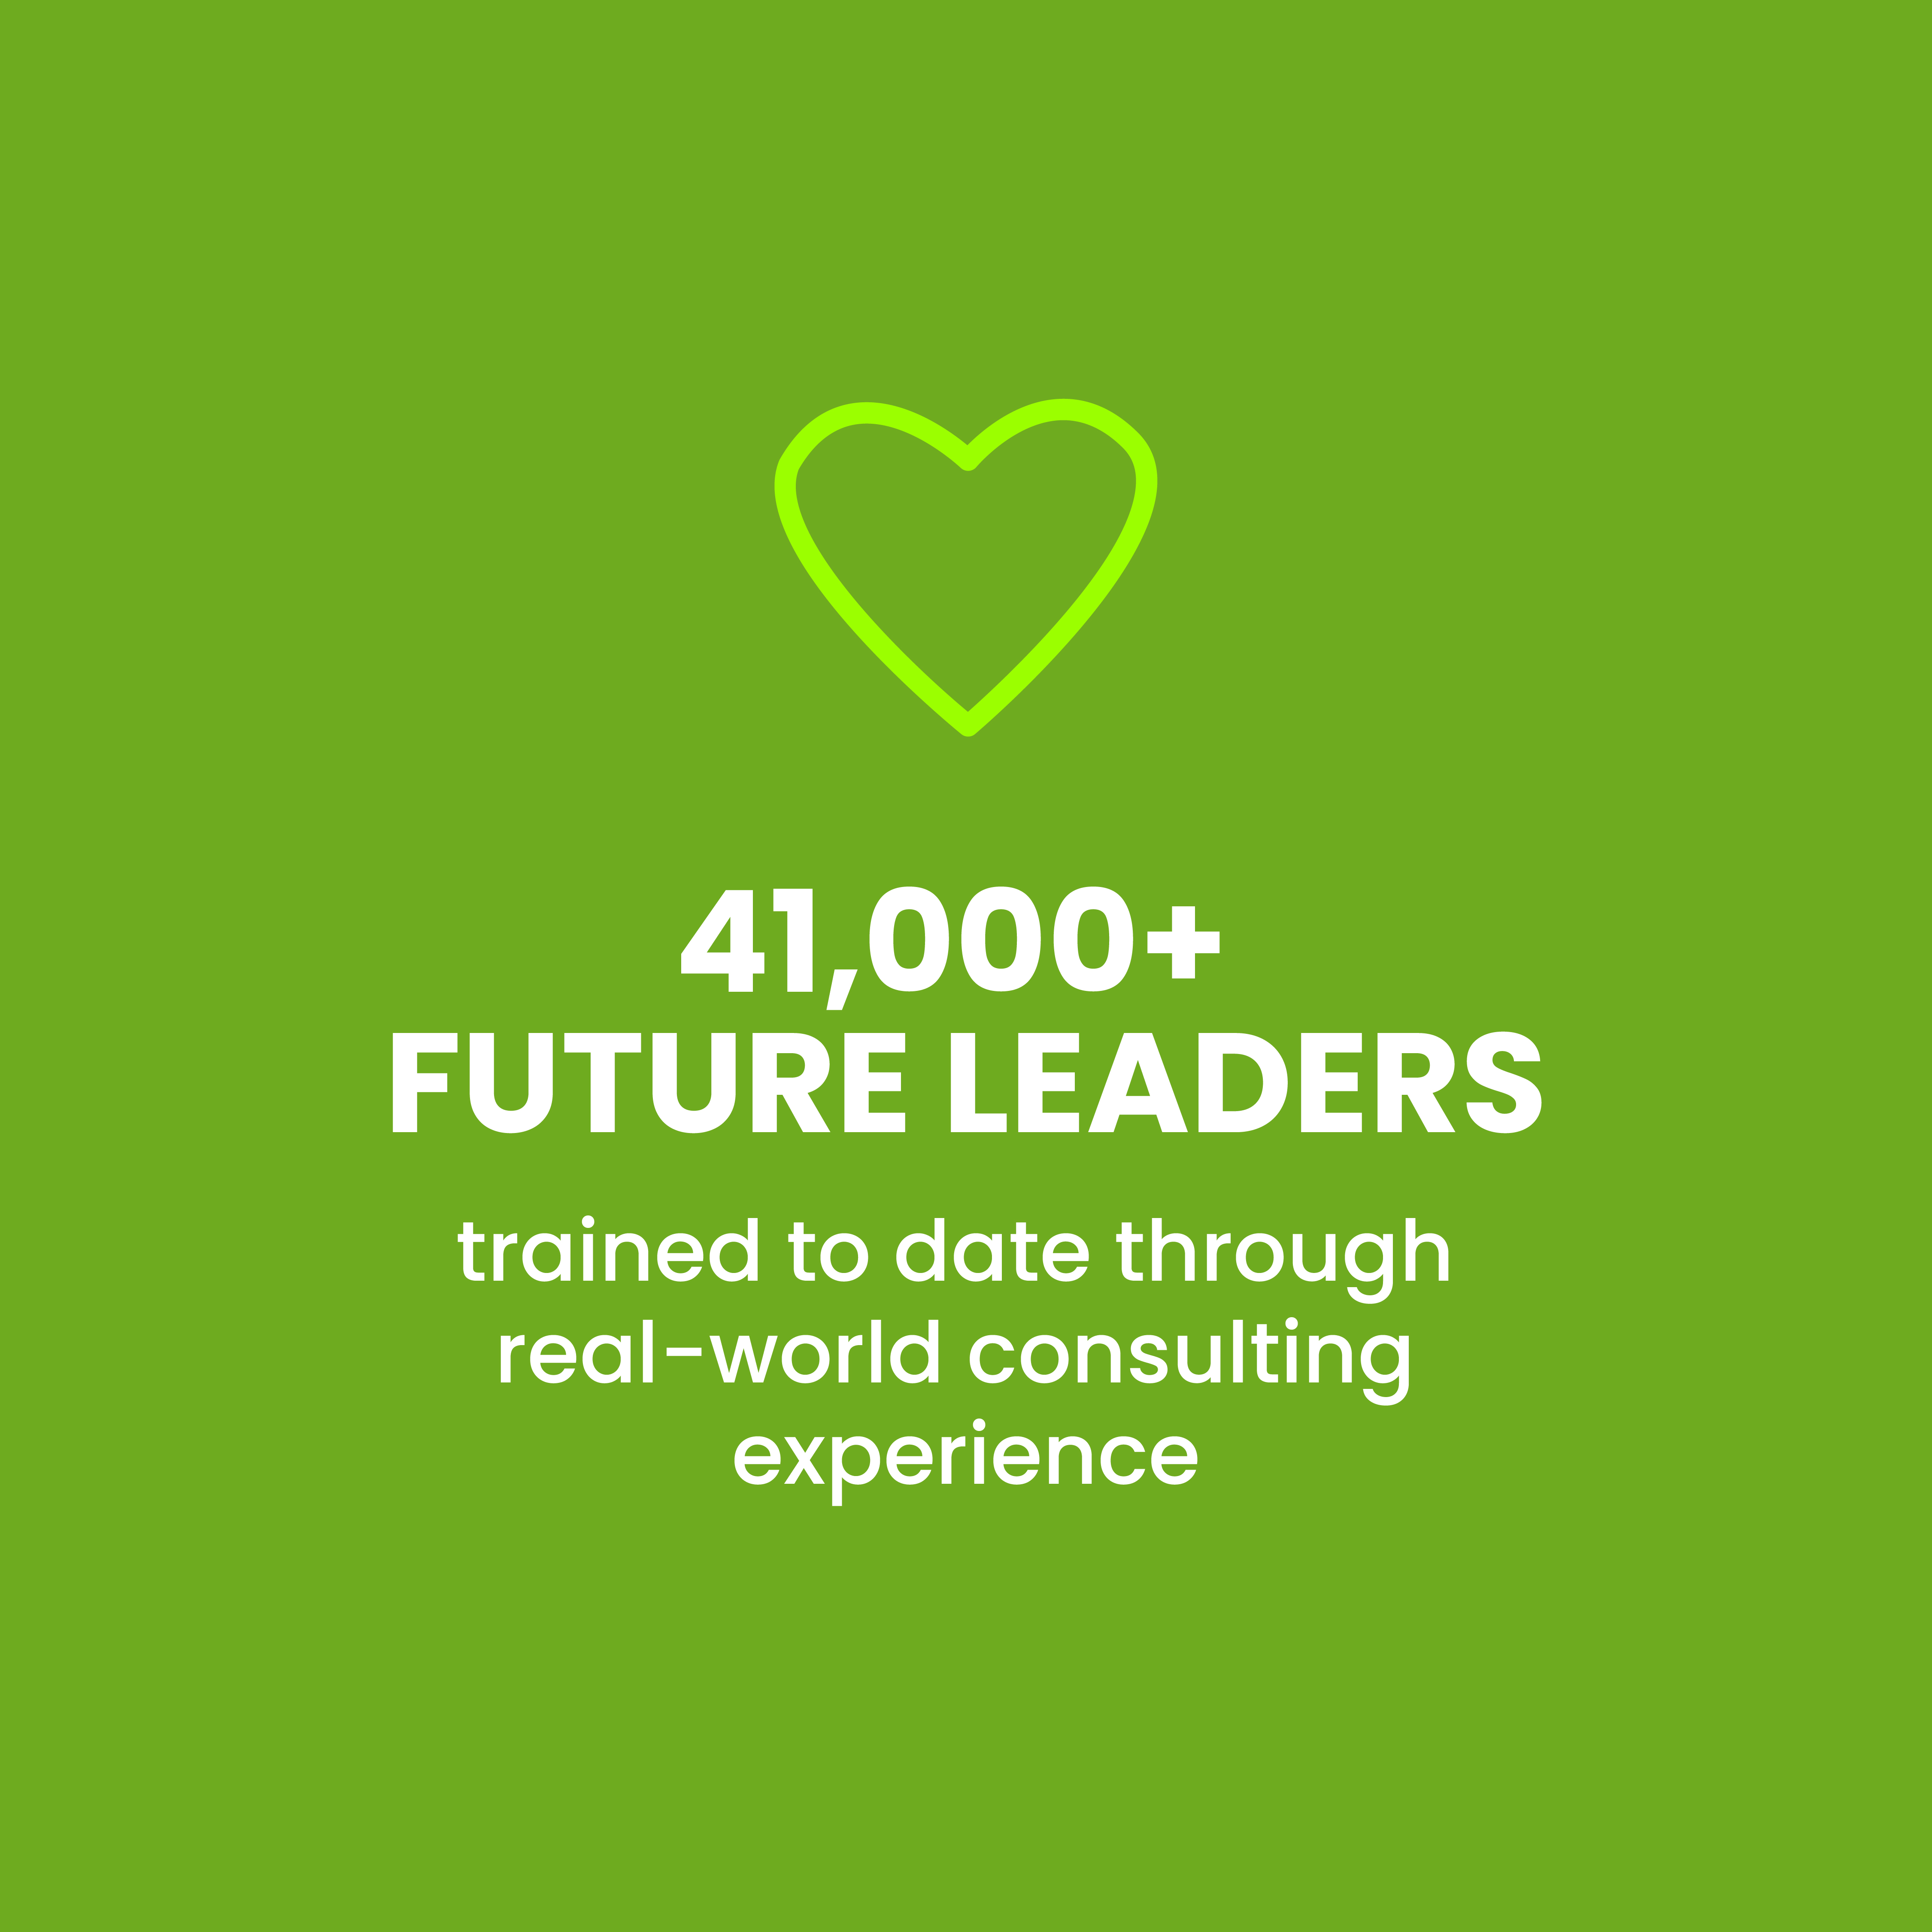 41,000 future leaders trained to date through real-world consulting experience.